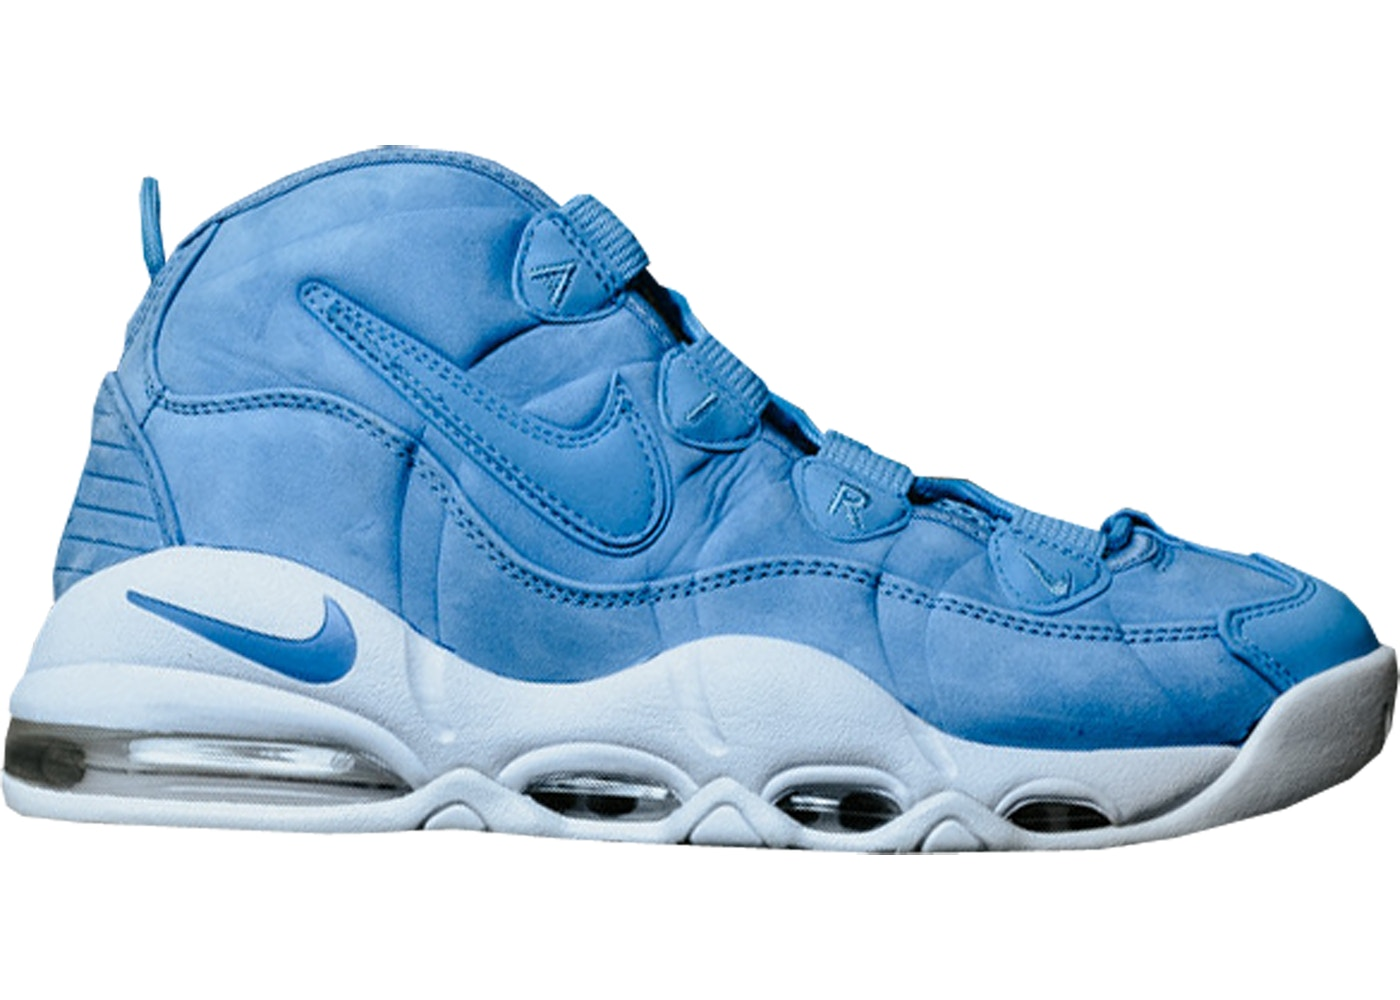 750e85dba6a Air Max Uptempo 95 University Blue - 922932-400